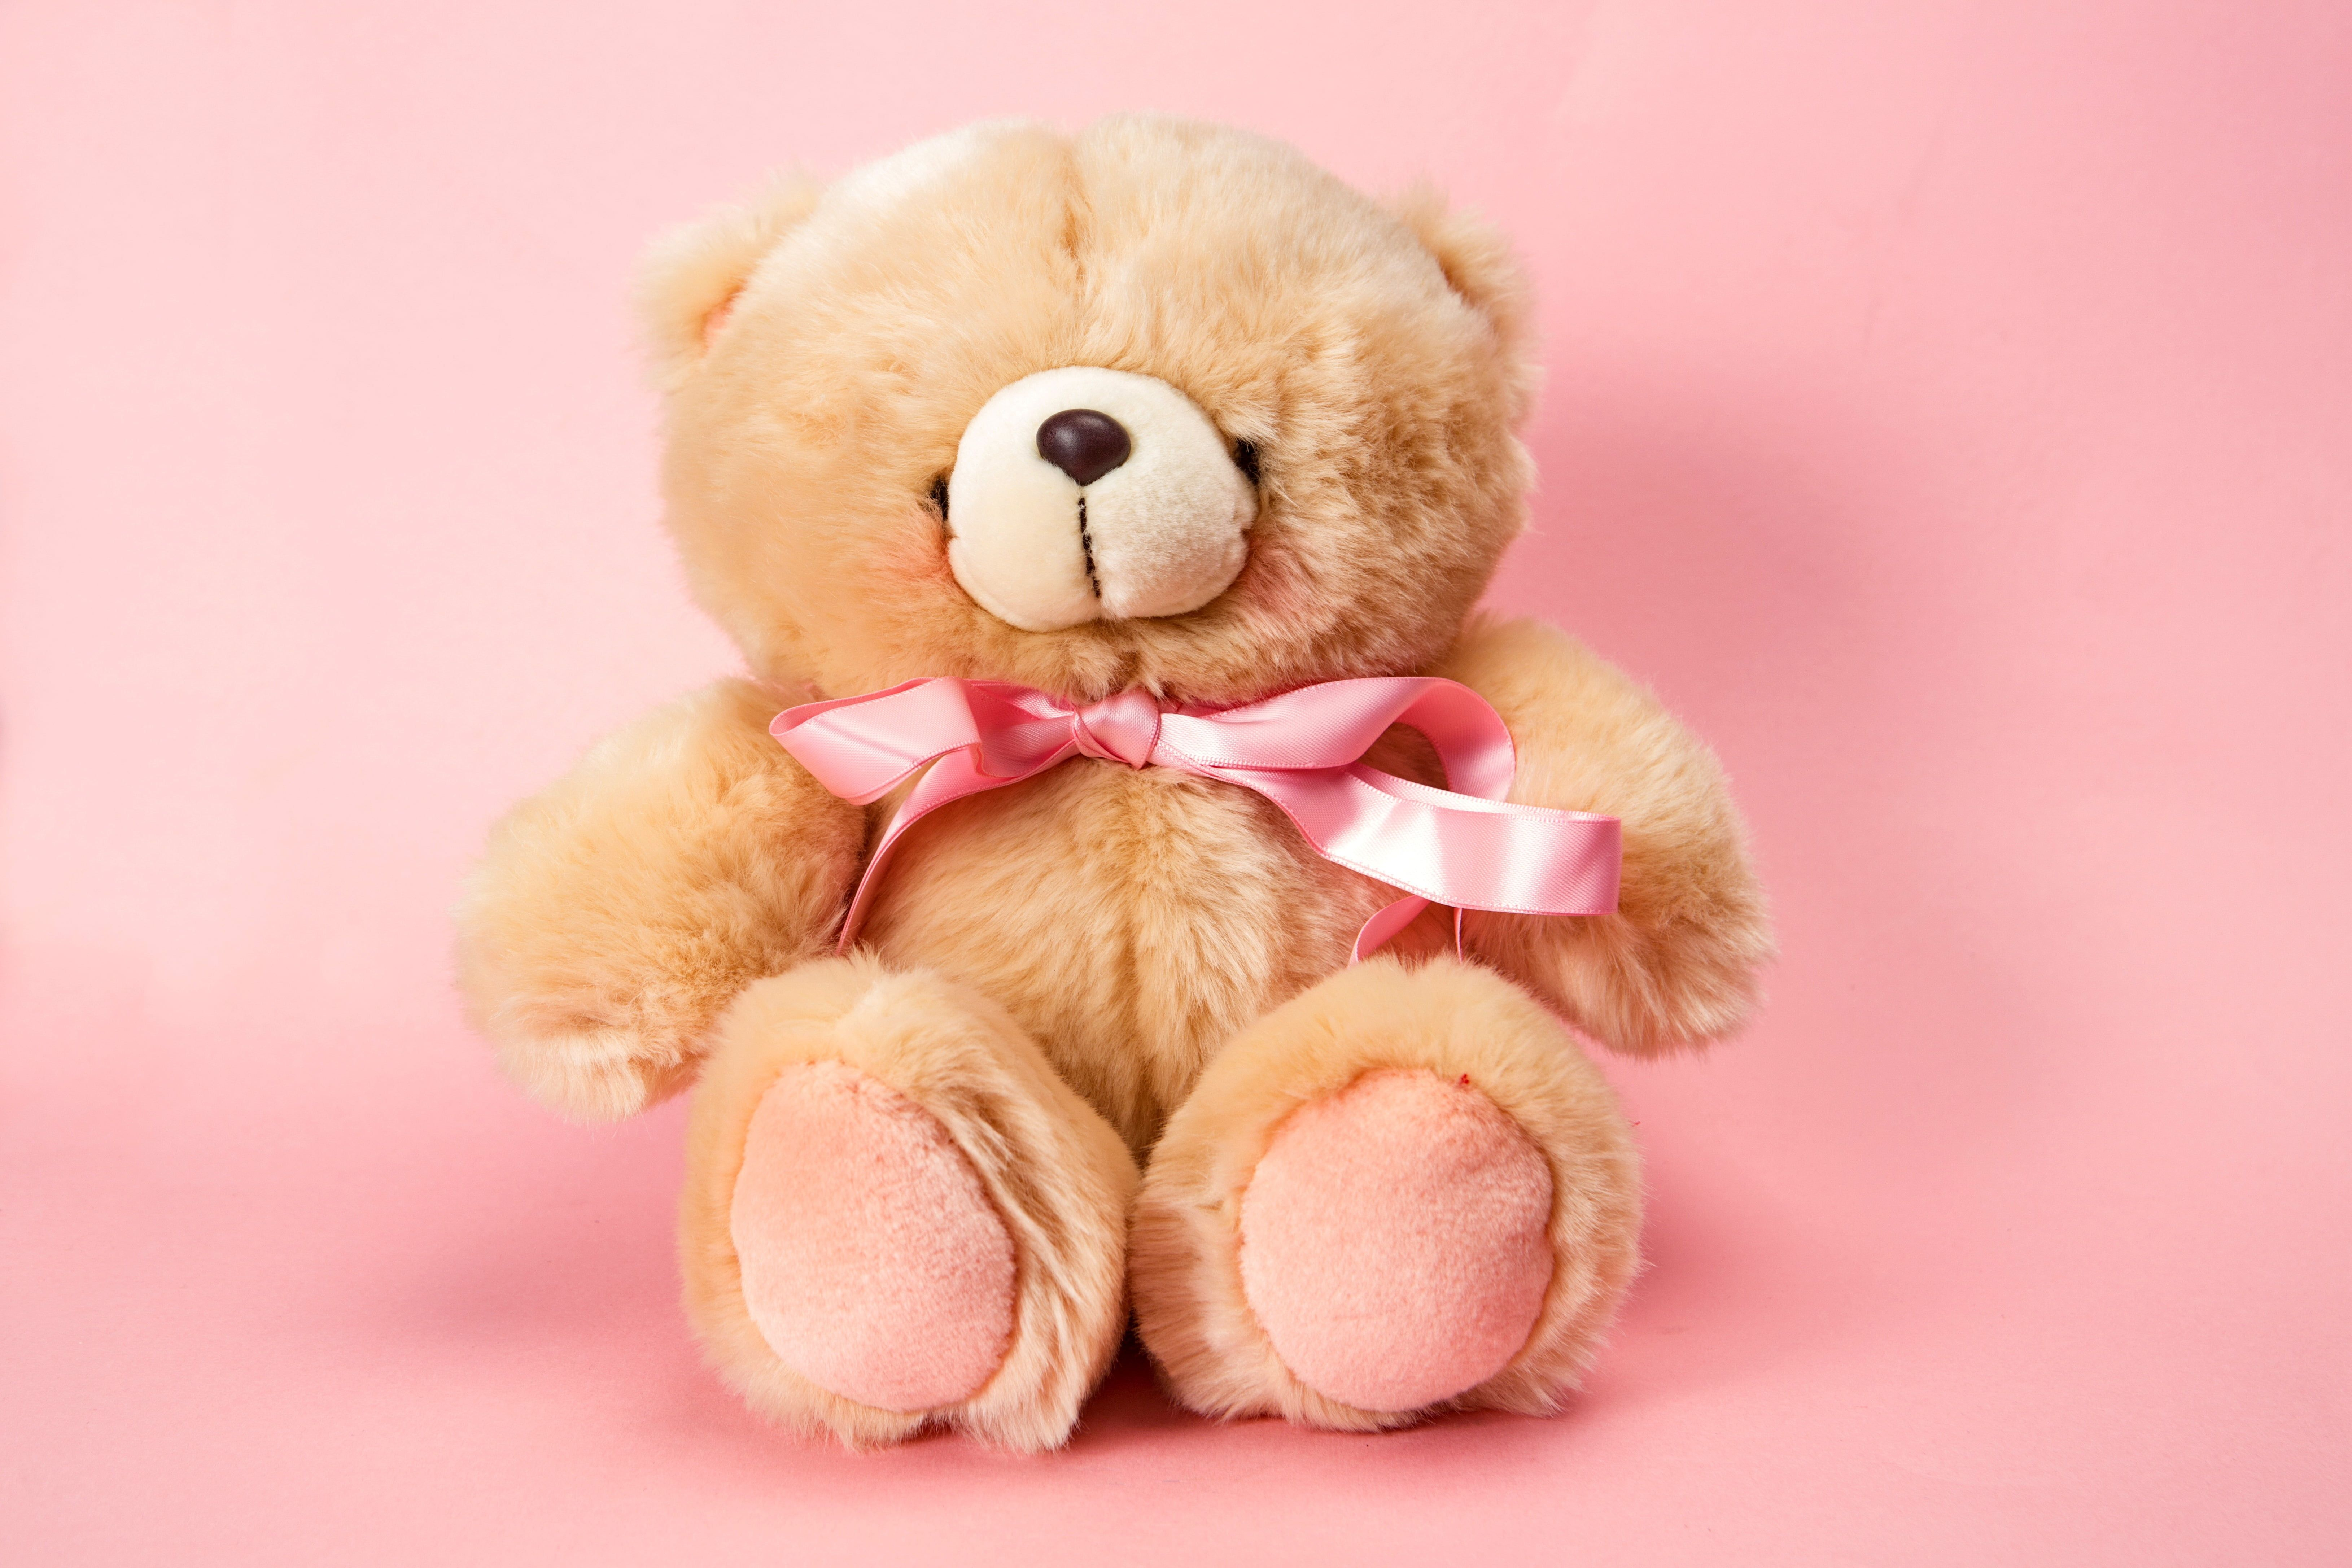 Cute Teddy Bear And Love Wallpapers Download For Mobile 3 Teddy Bear Images Teddy Bear Pictures Bear Wallpaper